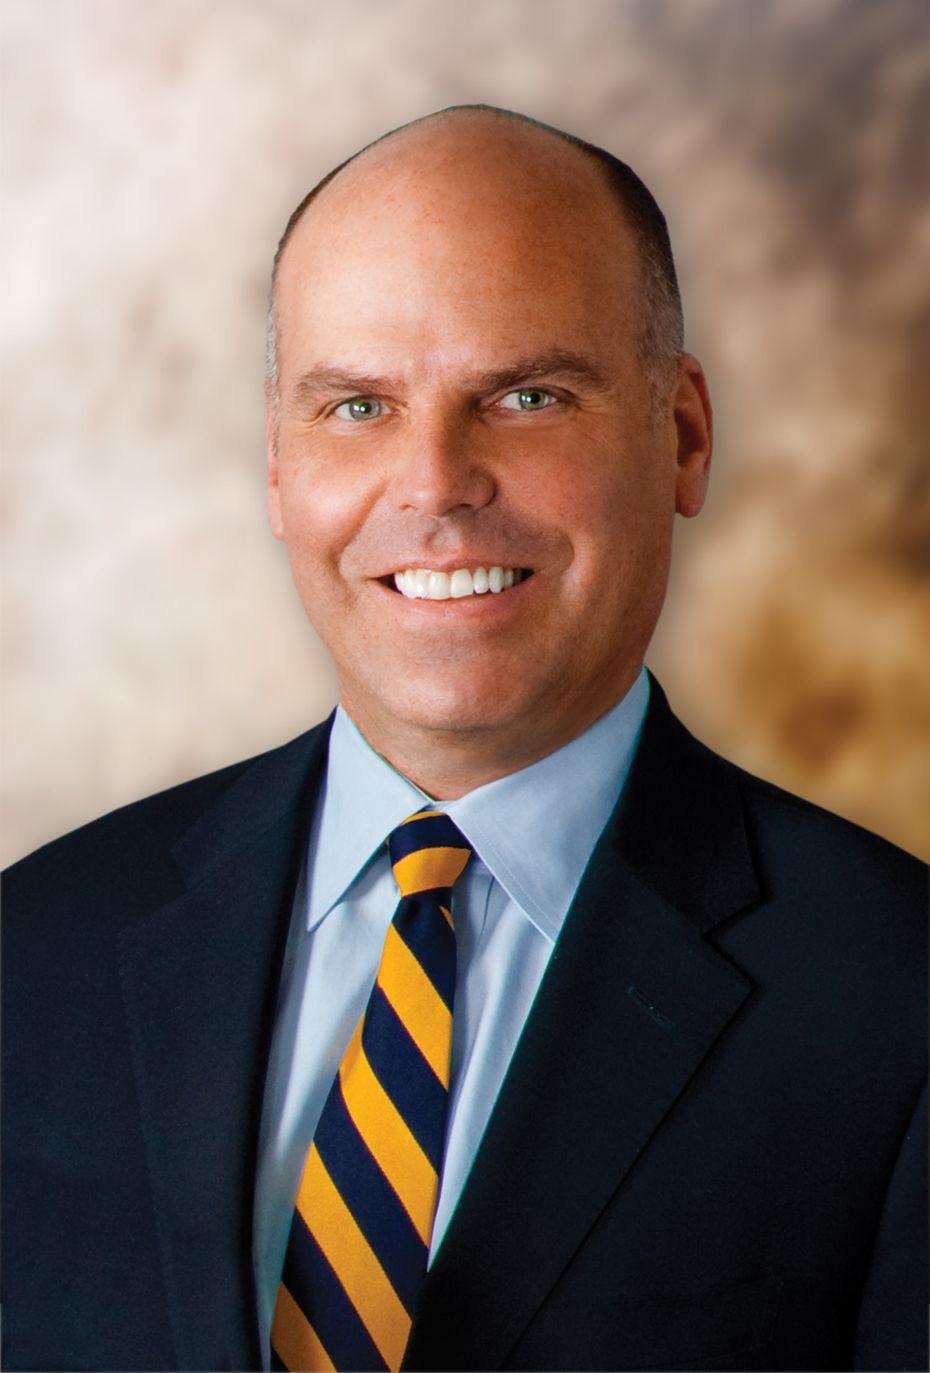 Doug Yearley is the CEO of Toll Brothers.